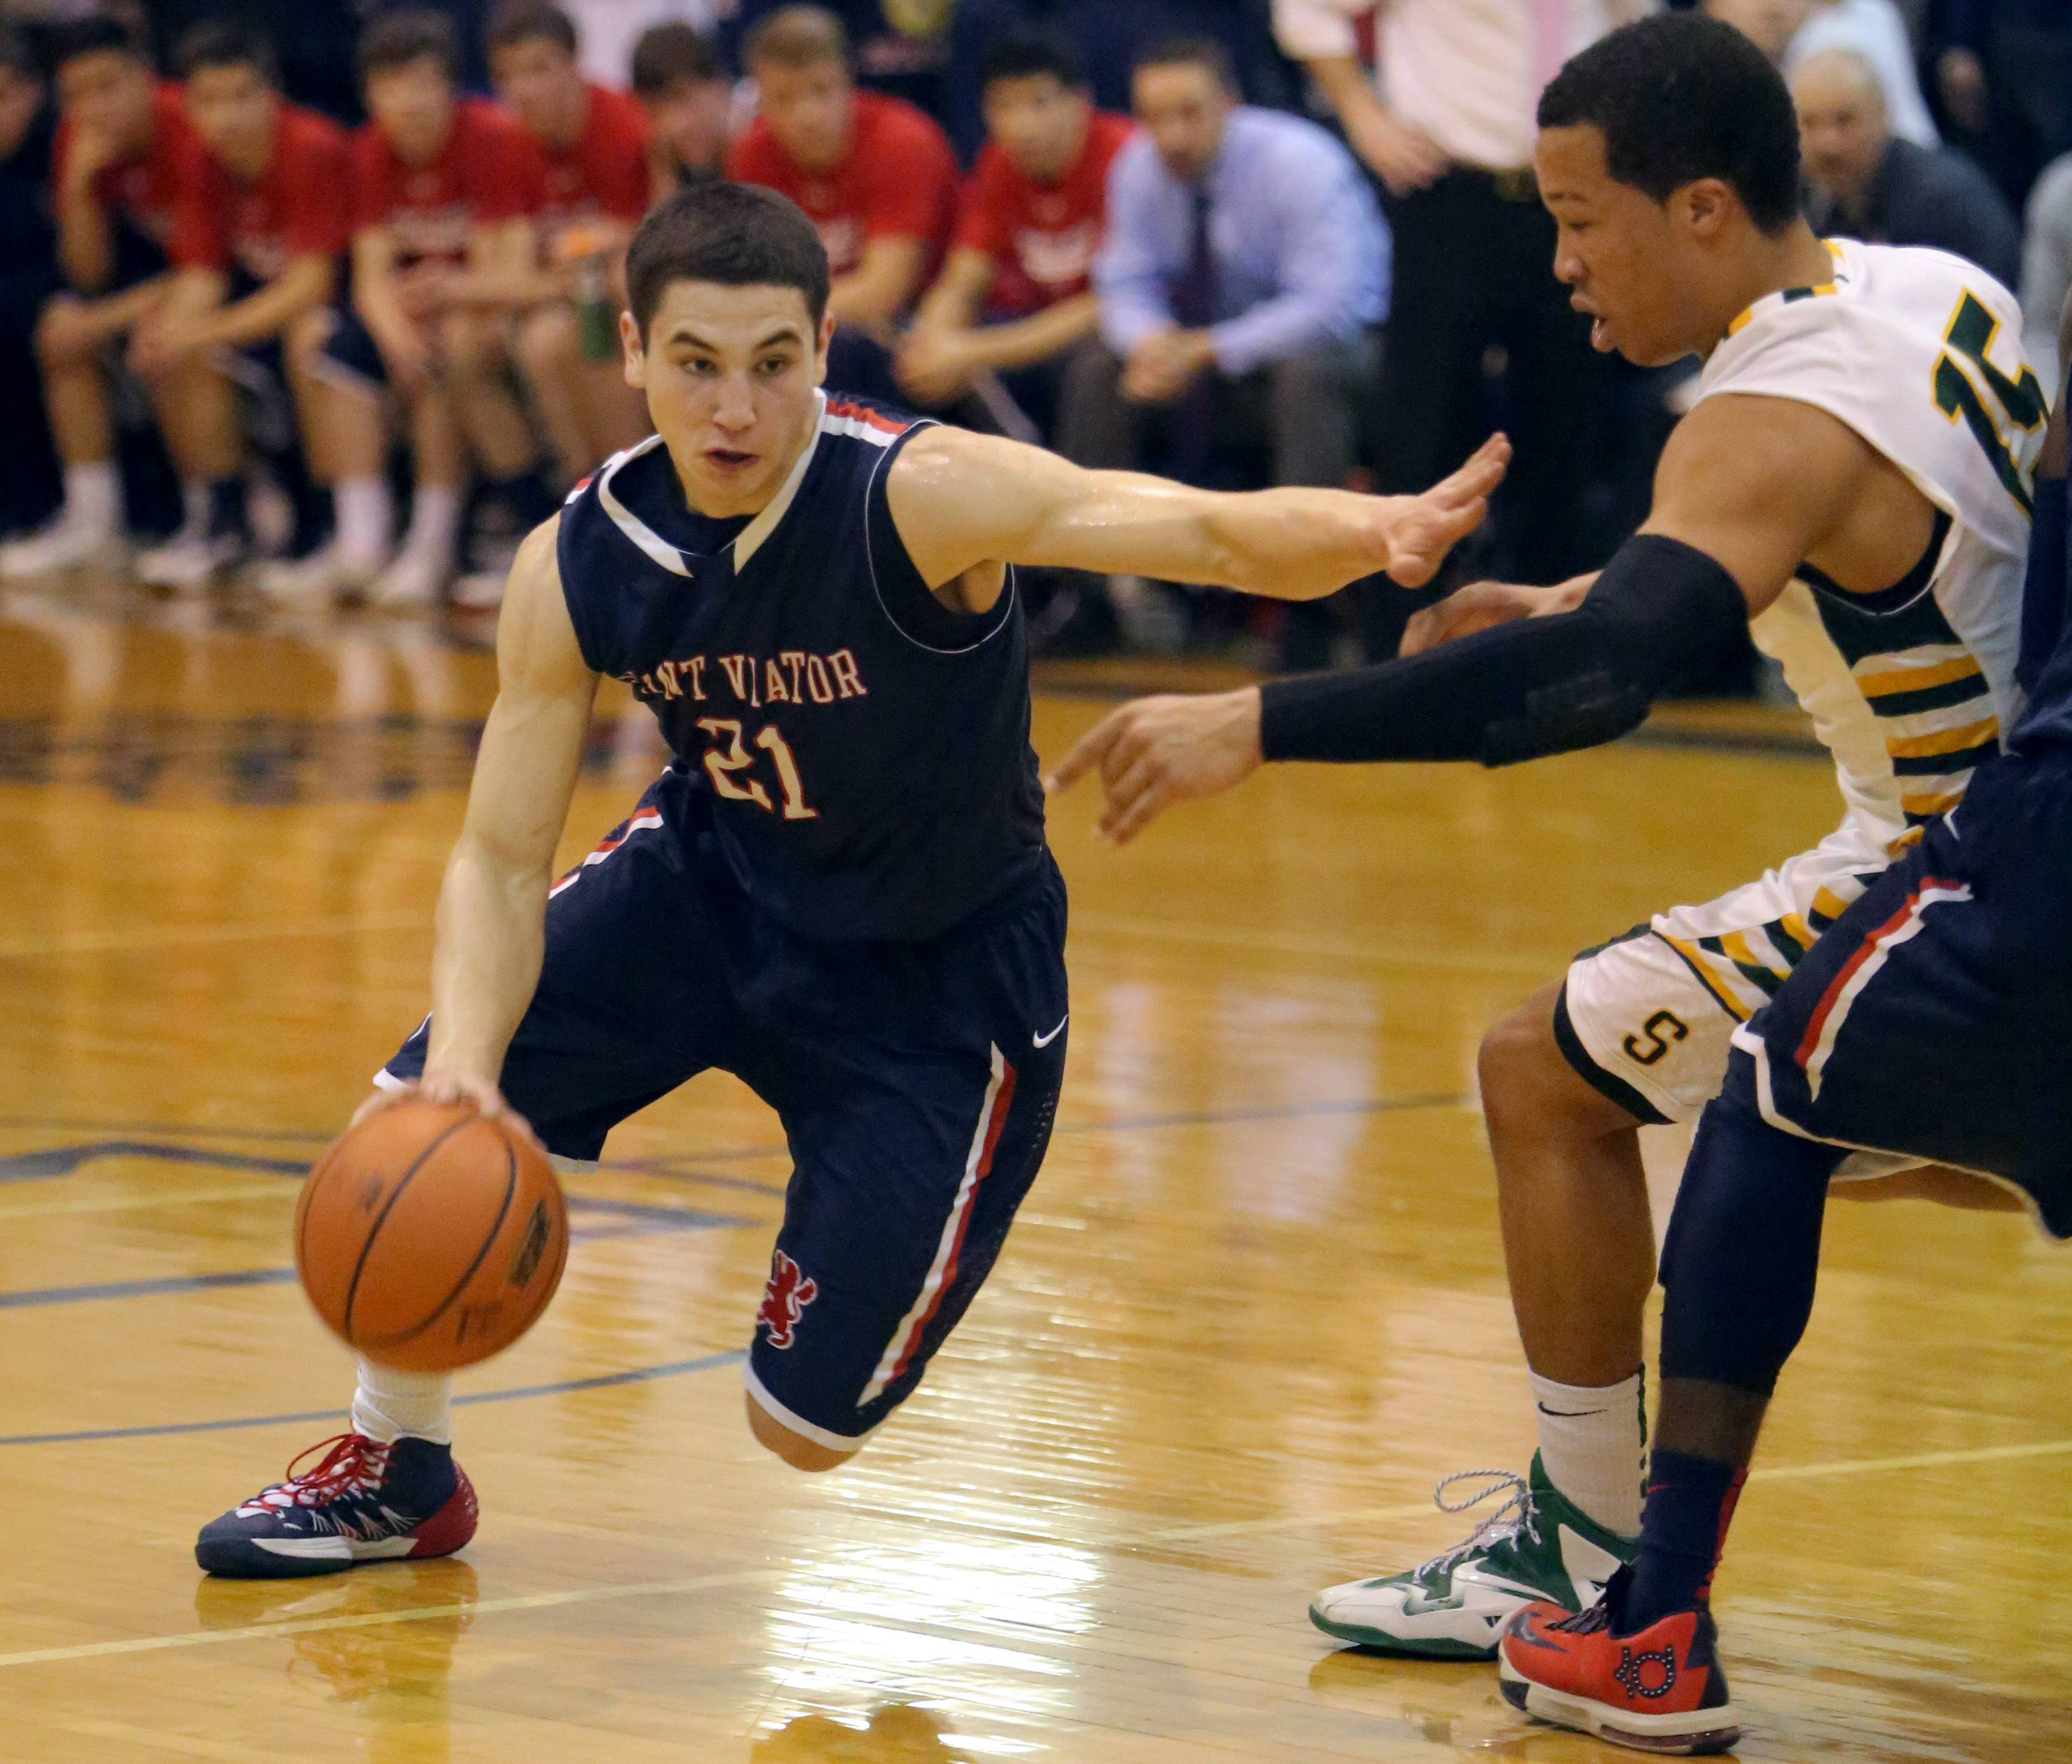 St. Viator's Mark Falotico, left, drives on Stevenson's Jalen Brunson during the Class 4A sectional semifinal at Lake Zurich on Tuesday.